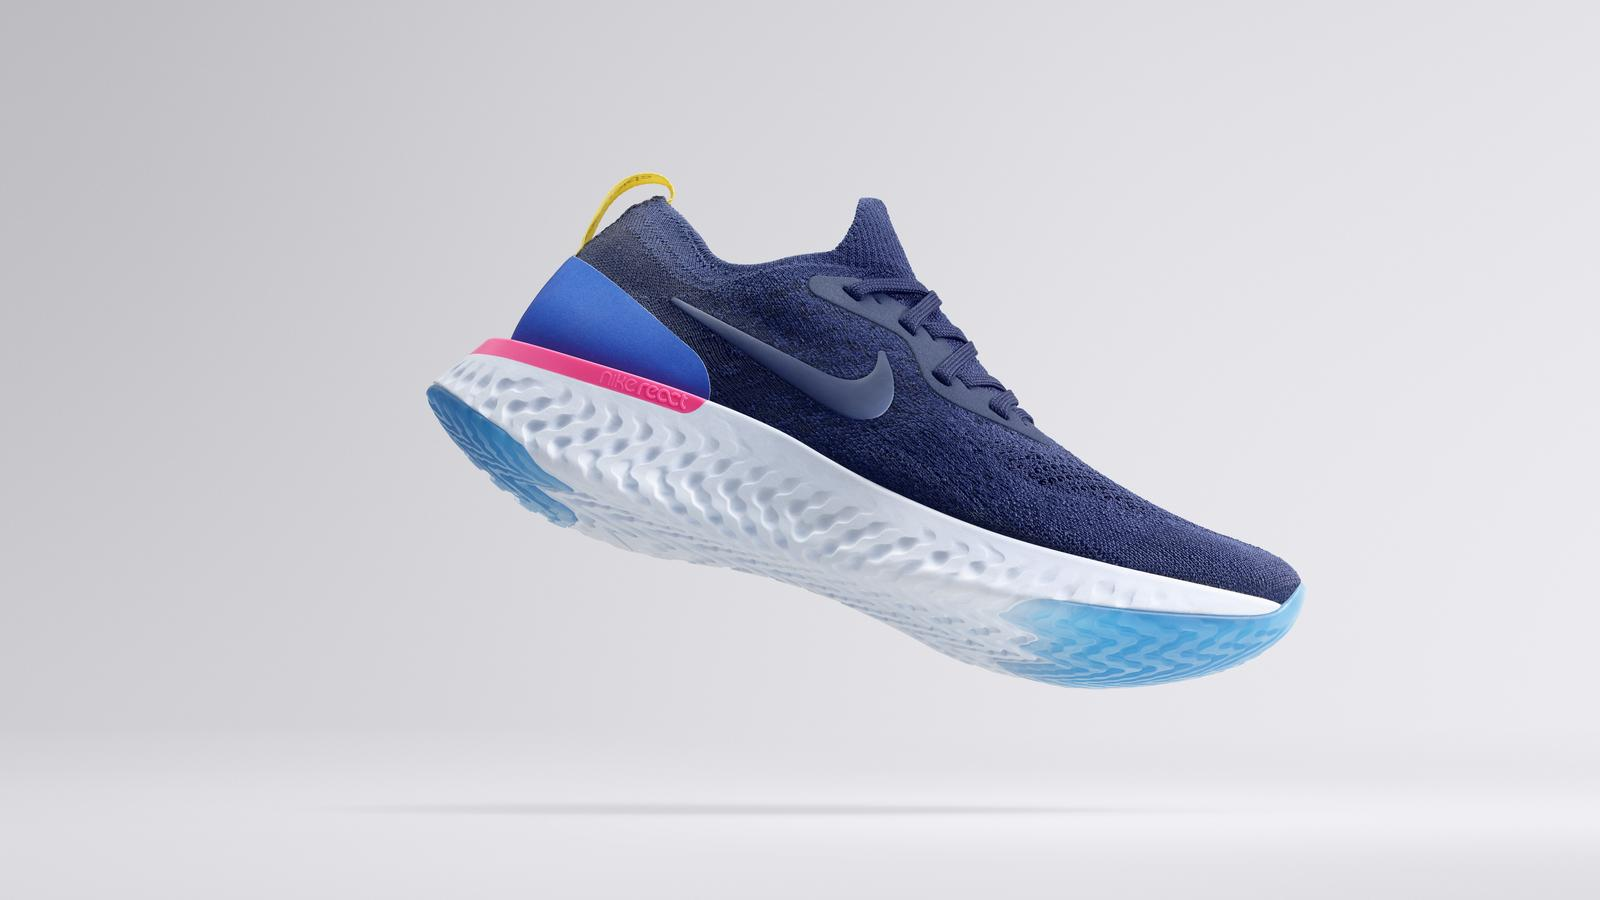 Nike's new running shoes were designed with athletes in mind. Photo